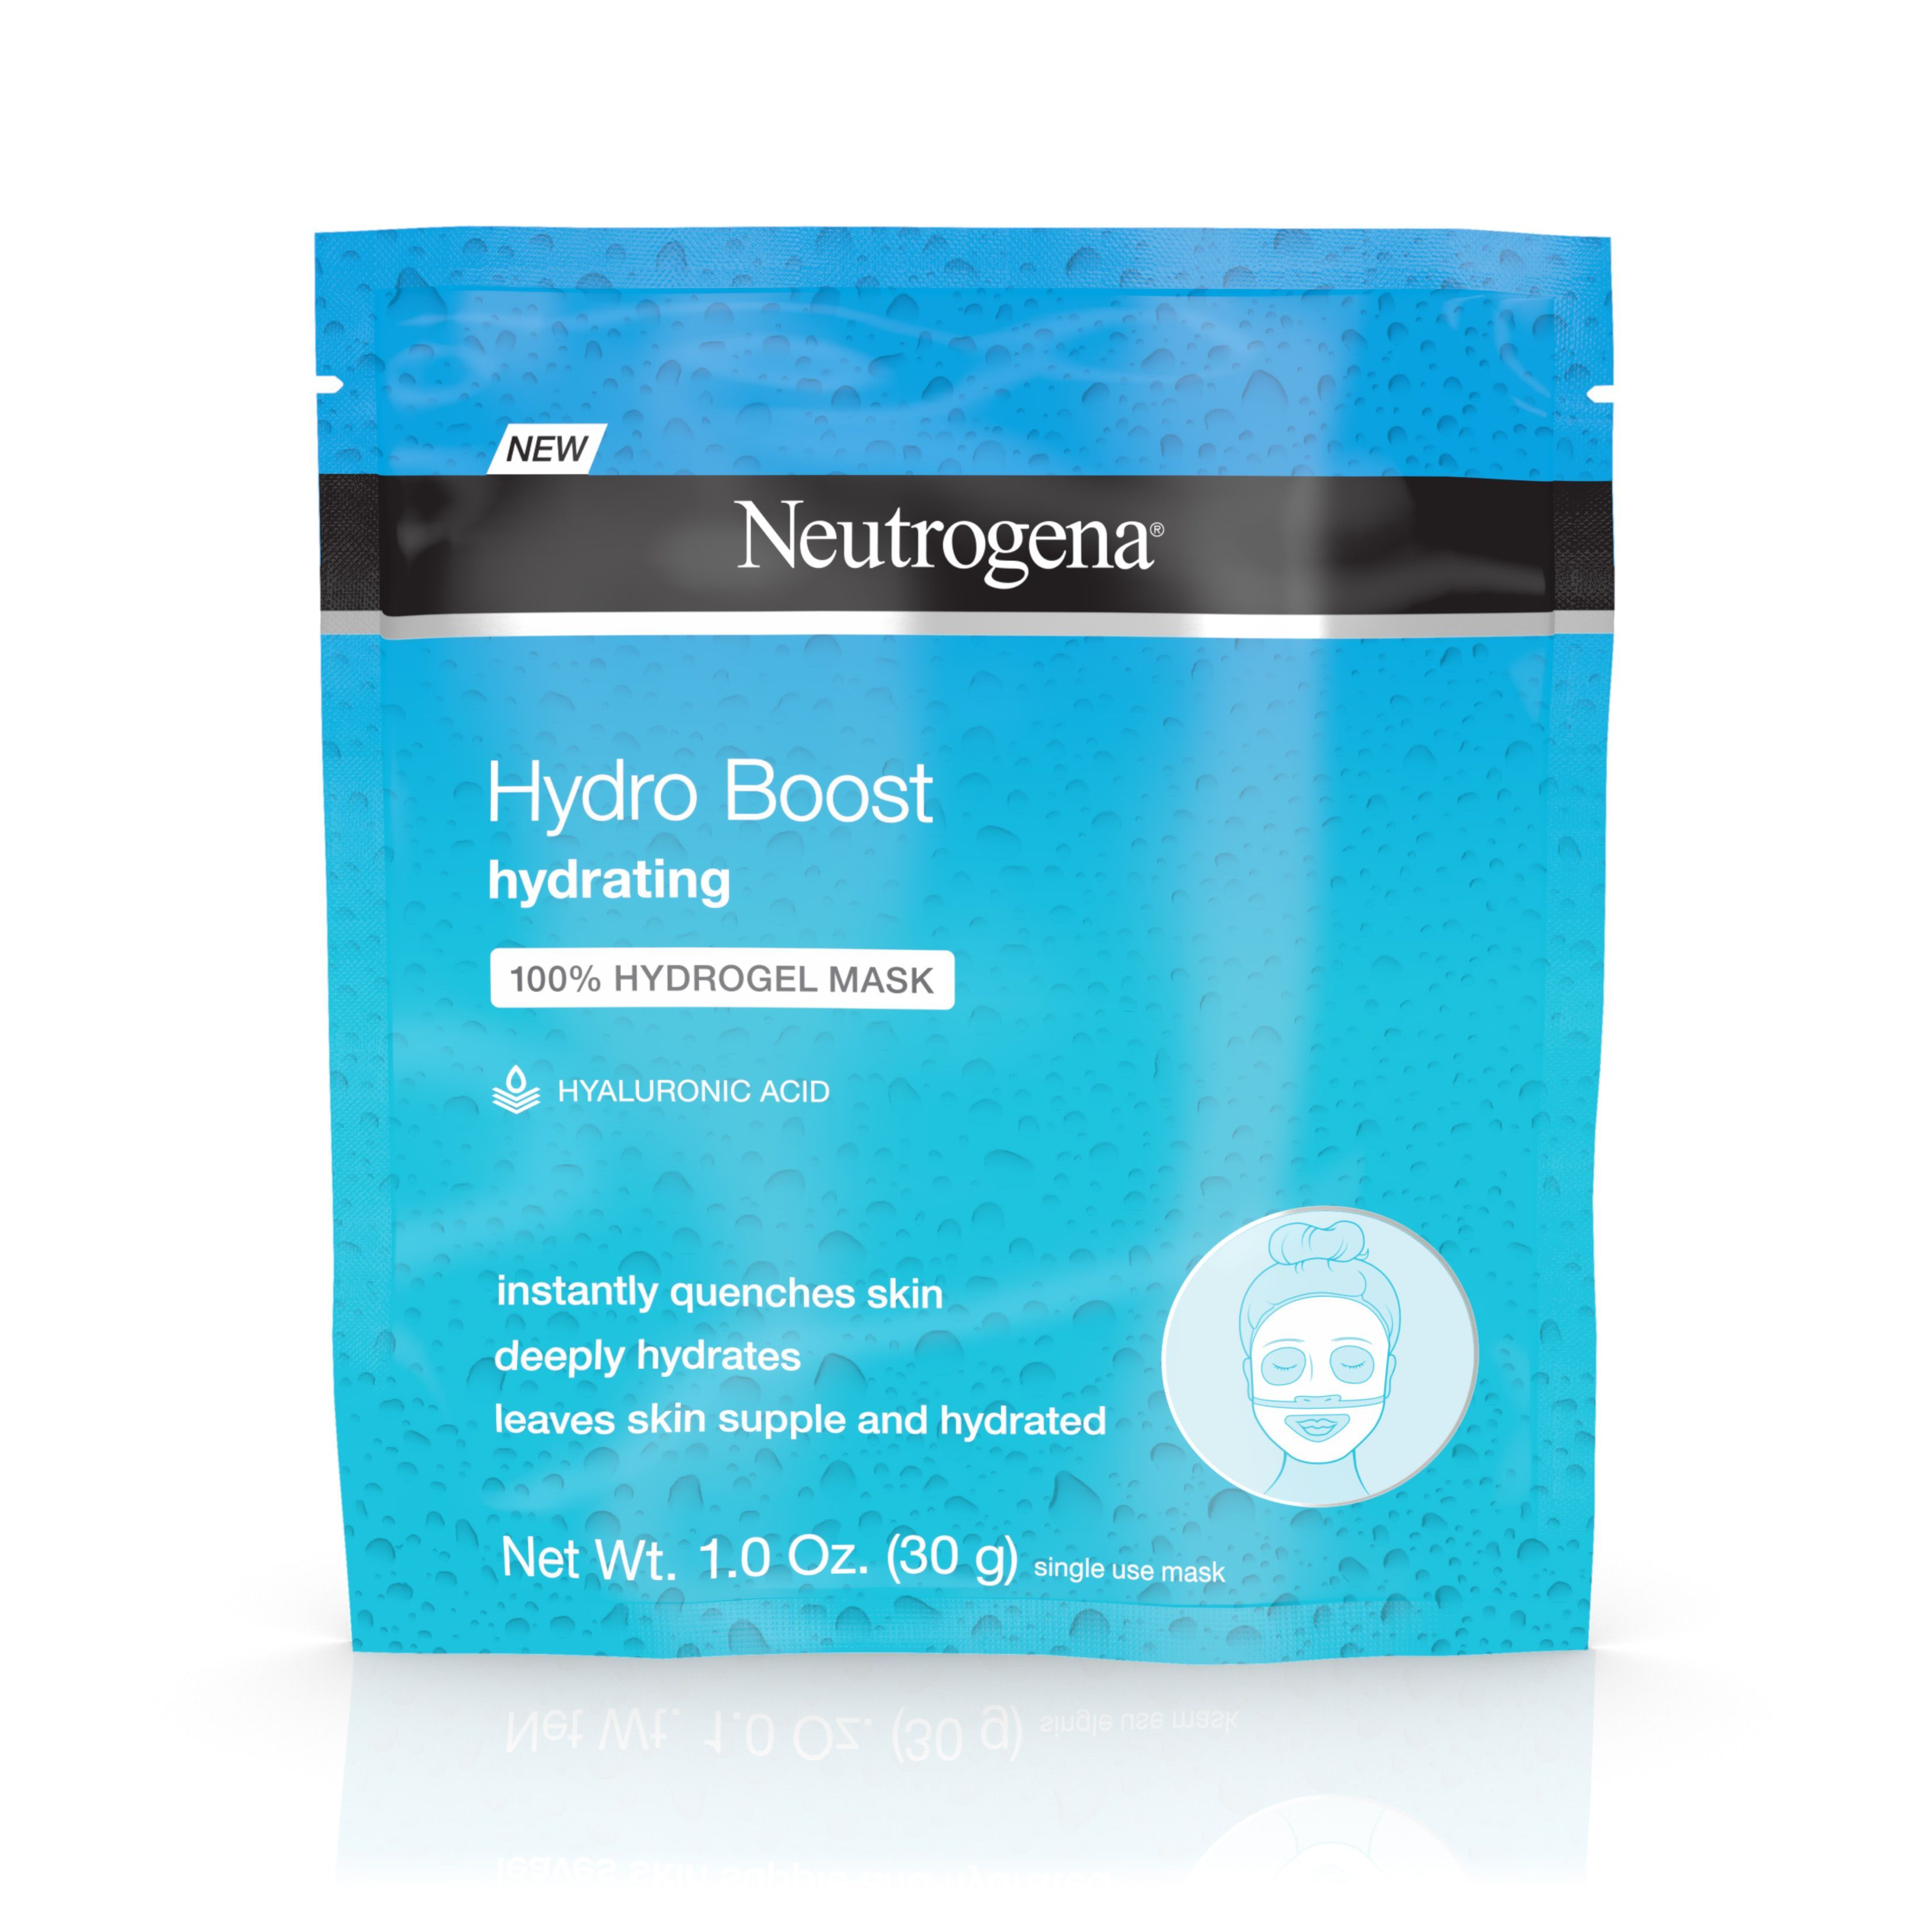 Hydro Boost Feuchtigkeitsspendende Gesichtsmaske Neutrogena Hydro Boost Feuchtigkeitsspende Hydrating Face Mask Moisturizing Face Mask Best Face Products